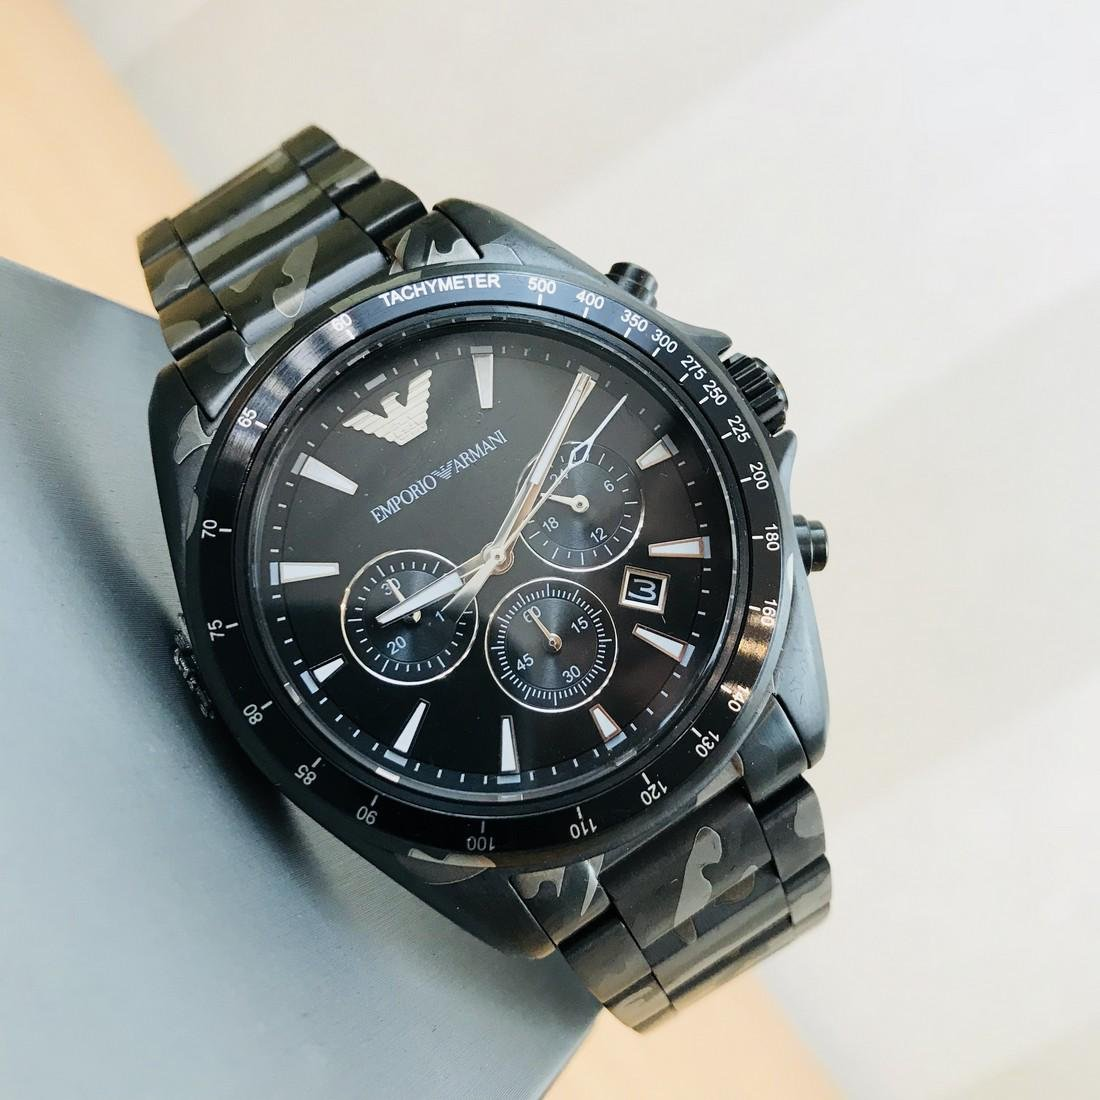 Emporio Armani – Camouflage-print Chronograph Watch - 2